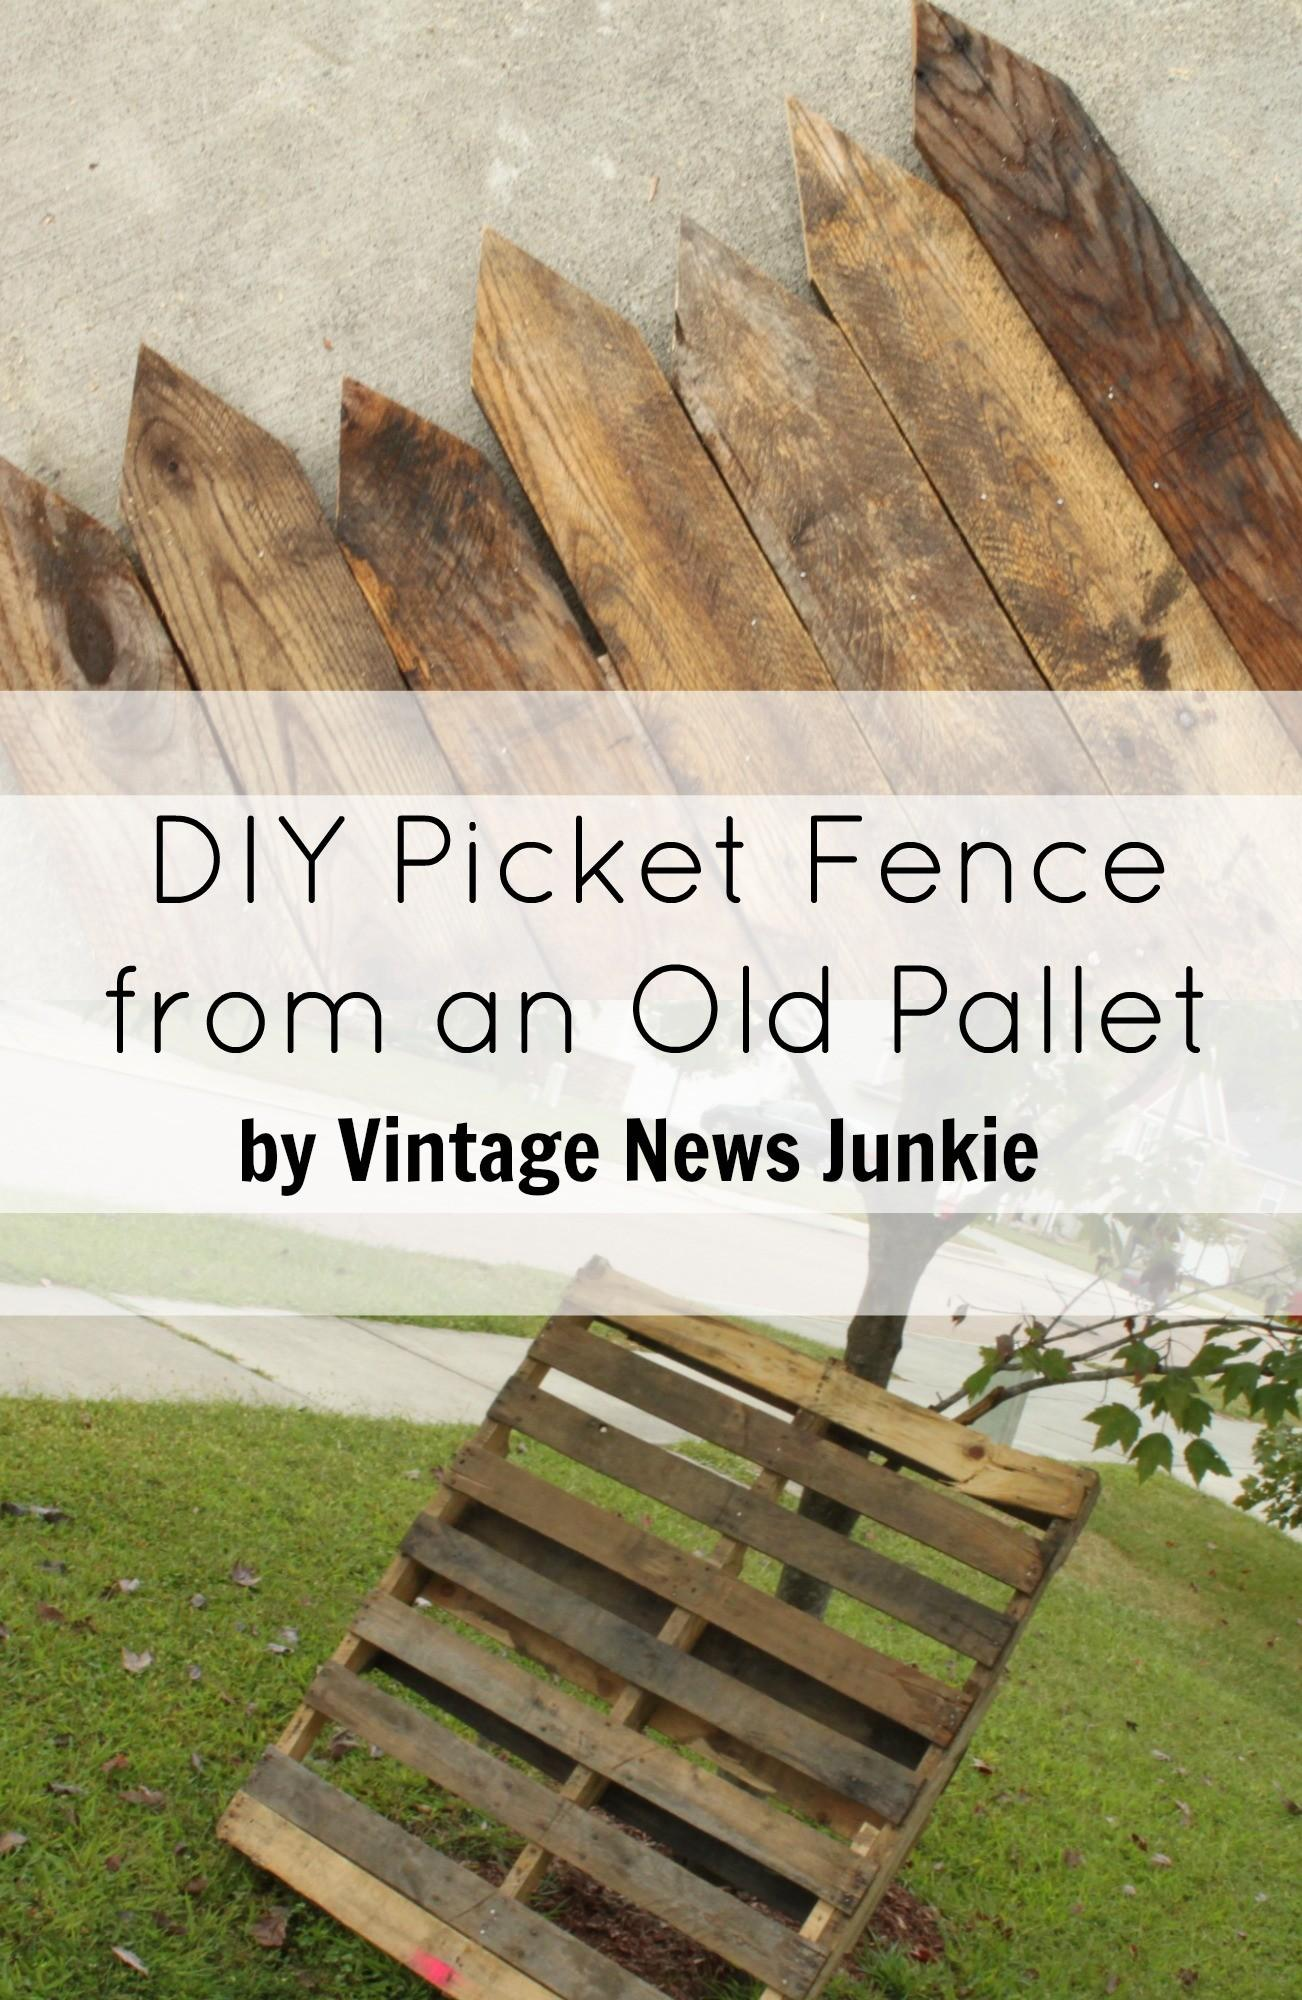 Diy Mini Picket Fence Old Pallet